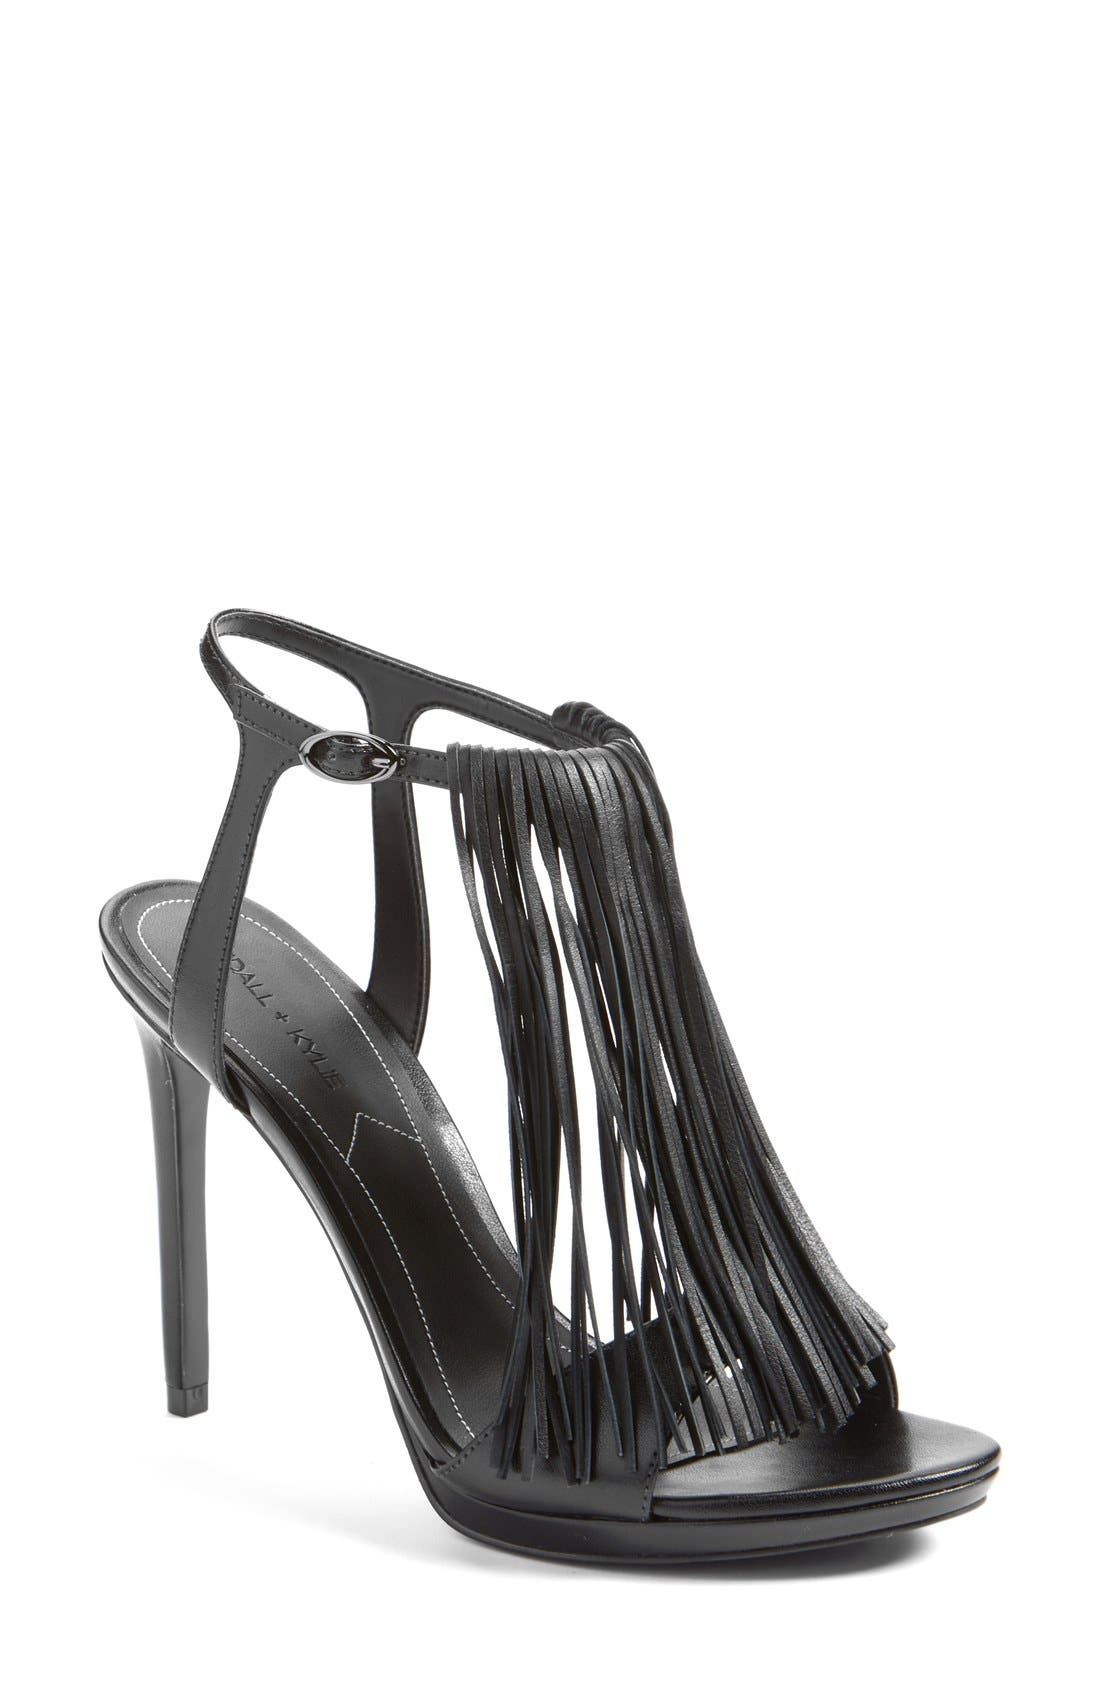 Main Image - KENDALL + KYLIE 'Aries' Fringe T-Strap Sandal (Women)